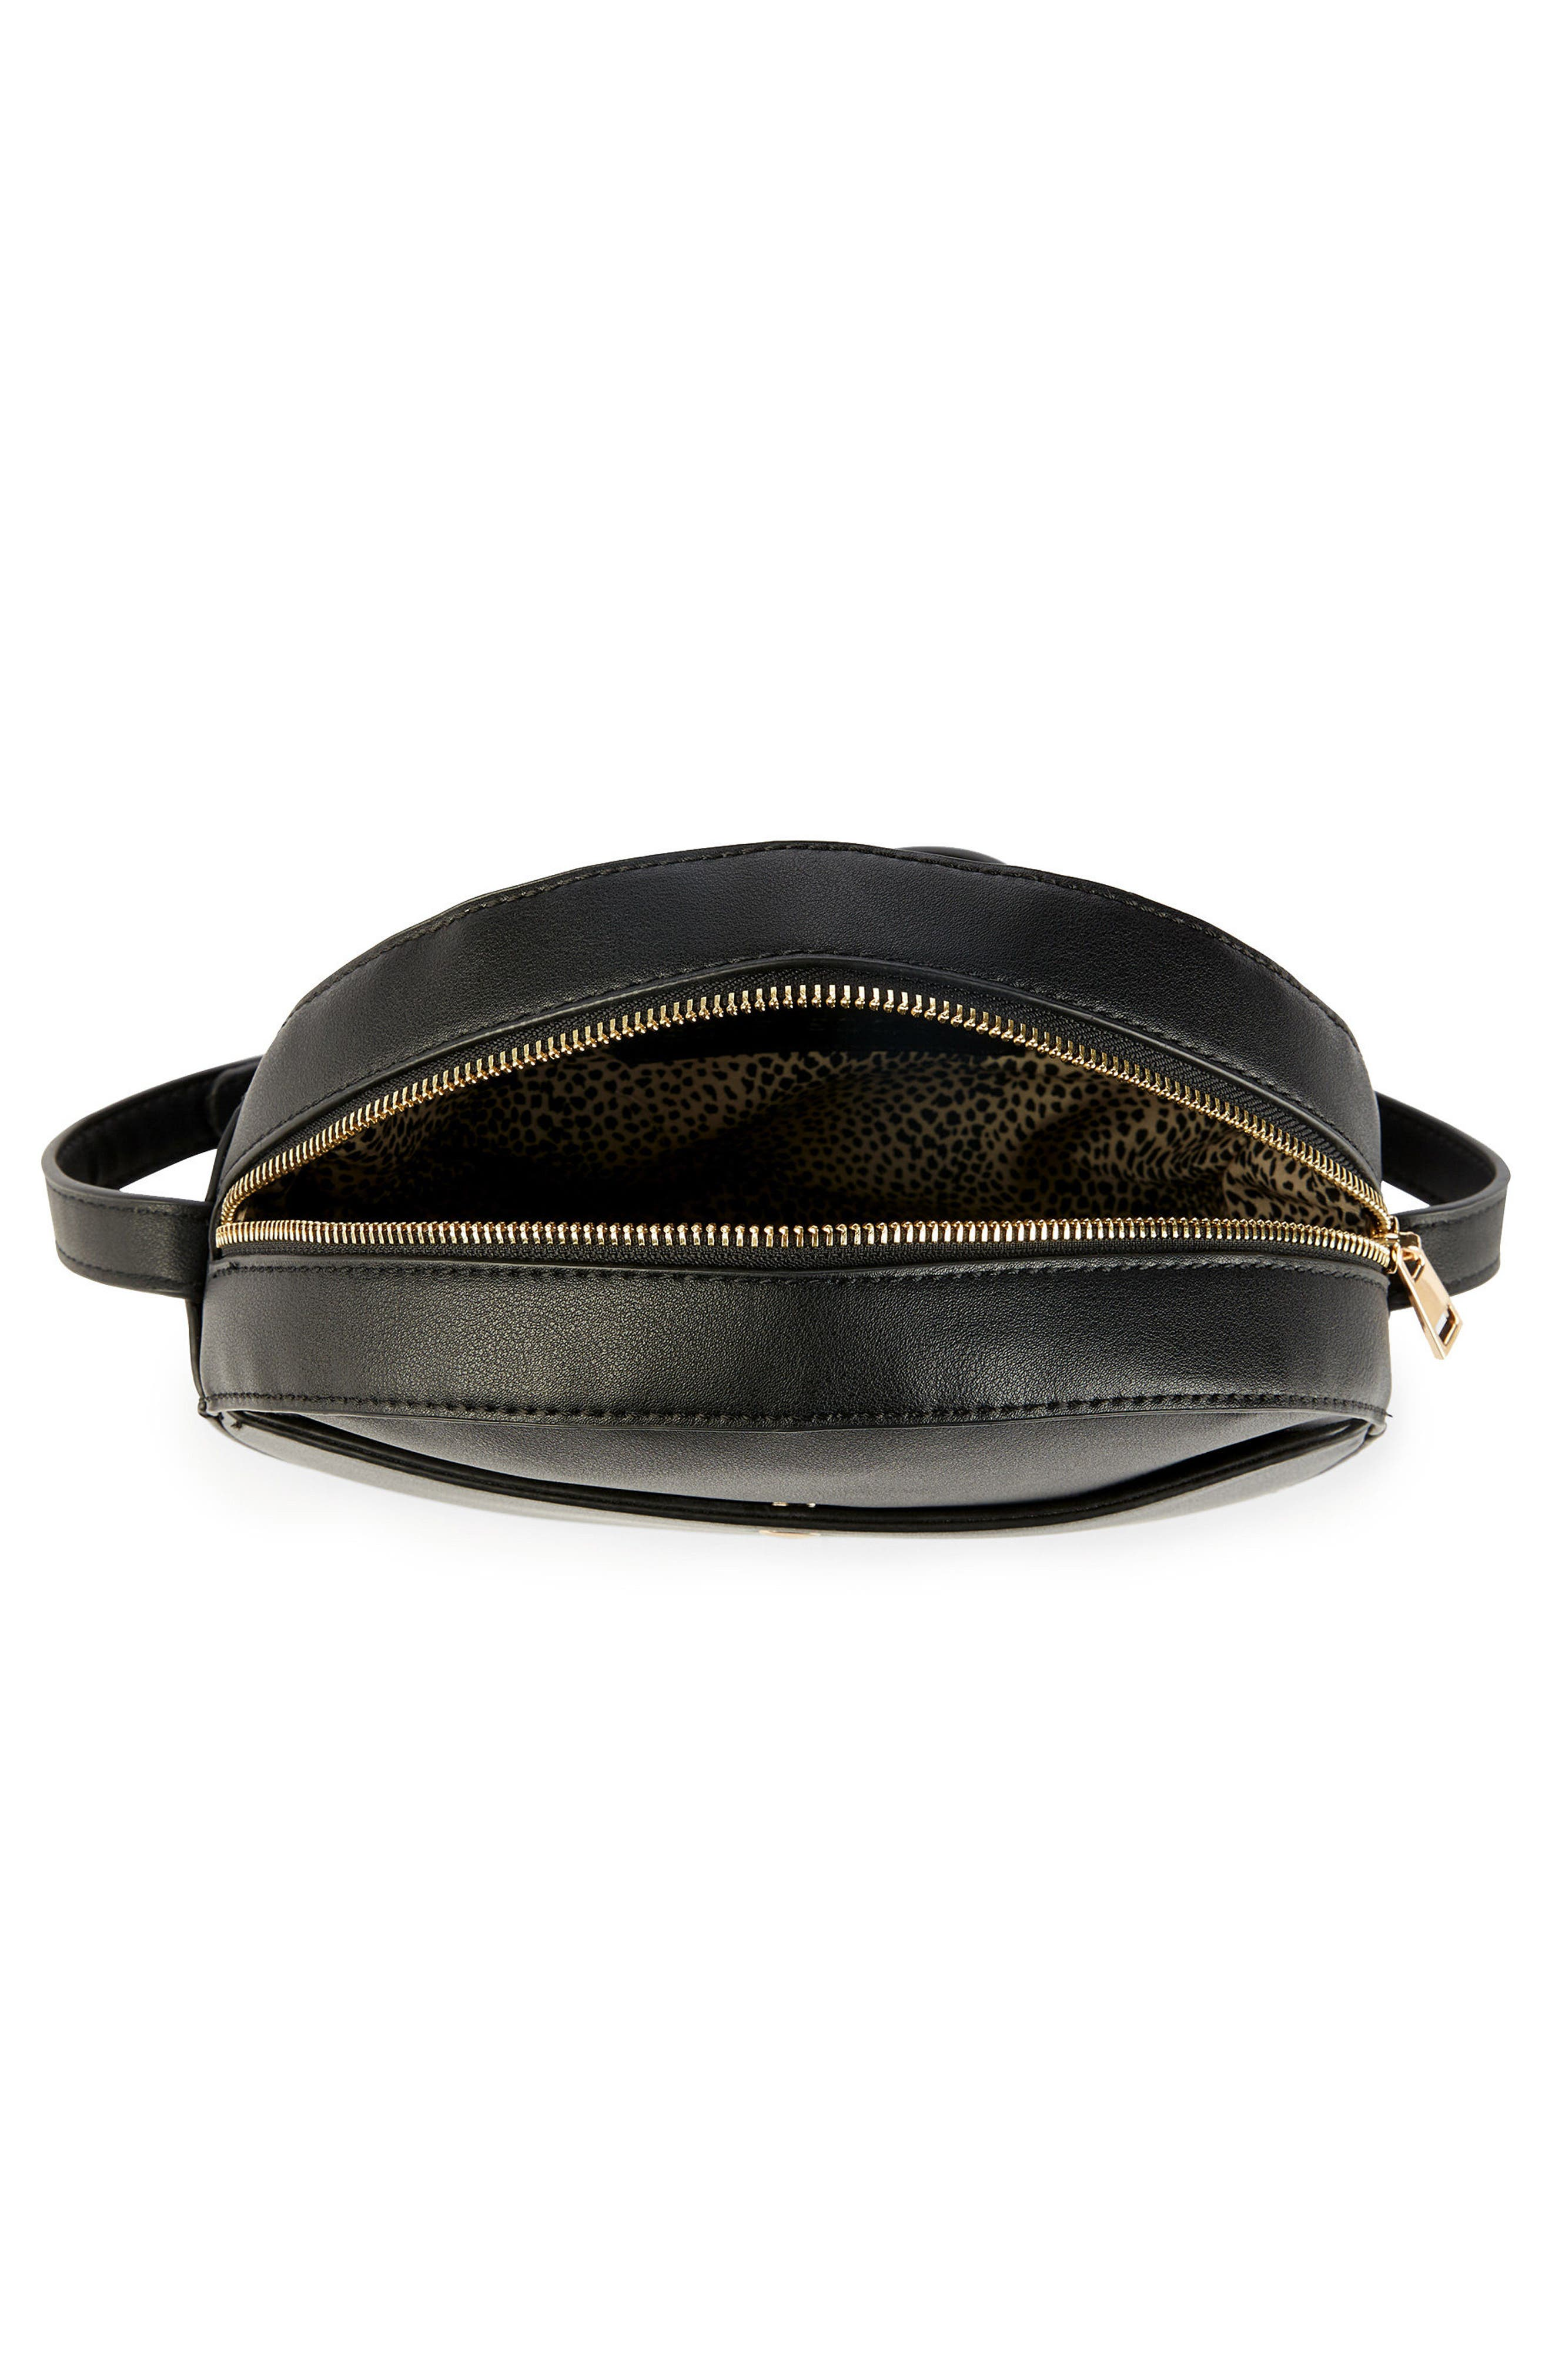 Canteen Faux Leather Crossbody Bag,                             Alternate thumbnail 3, color,                             Black